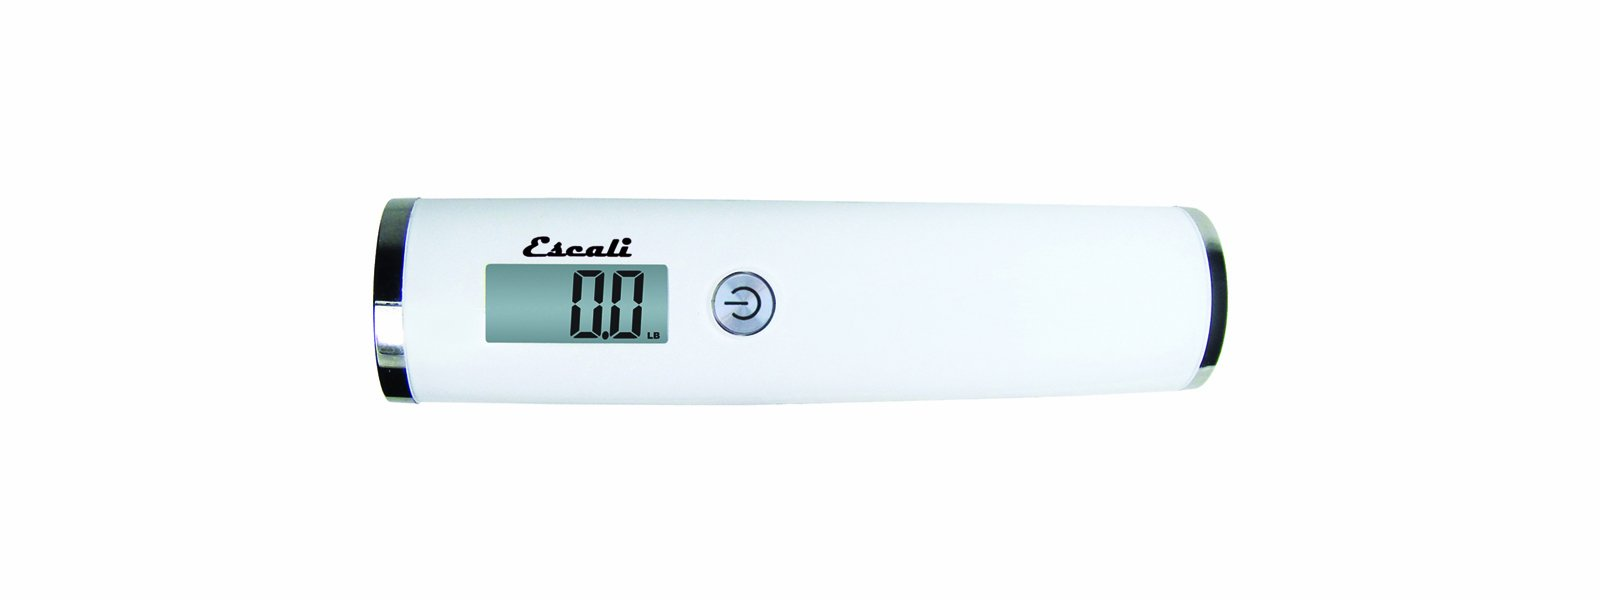 Escali Velo 11050W Hanging Digital Readout Portable Travel Compact Luggae Scale, 110lb Capacity, White by Escali